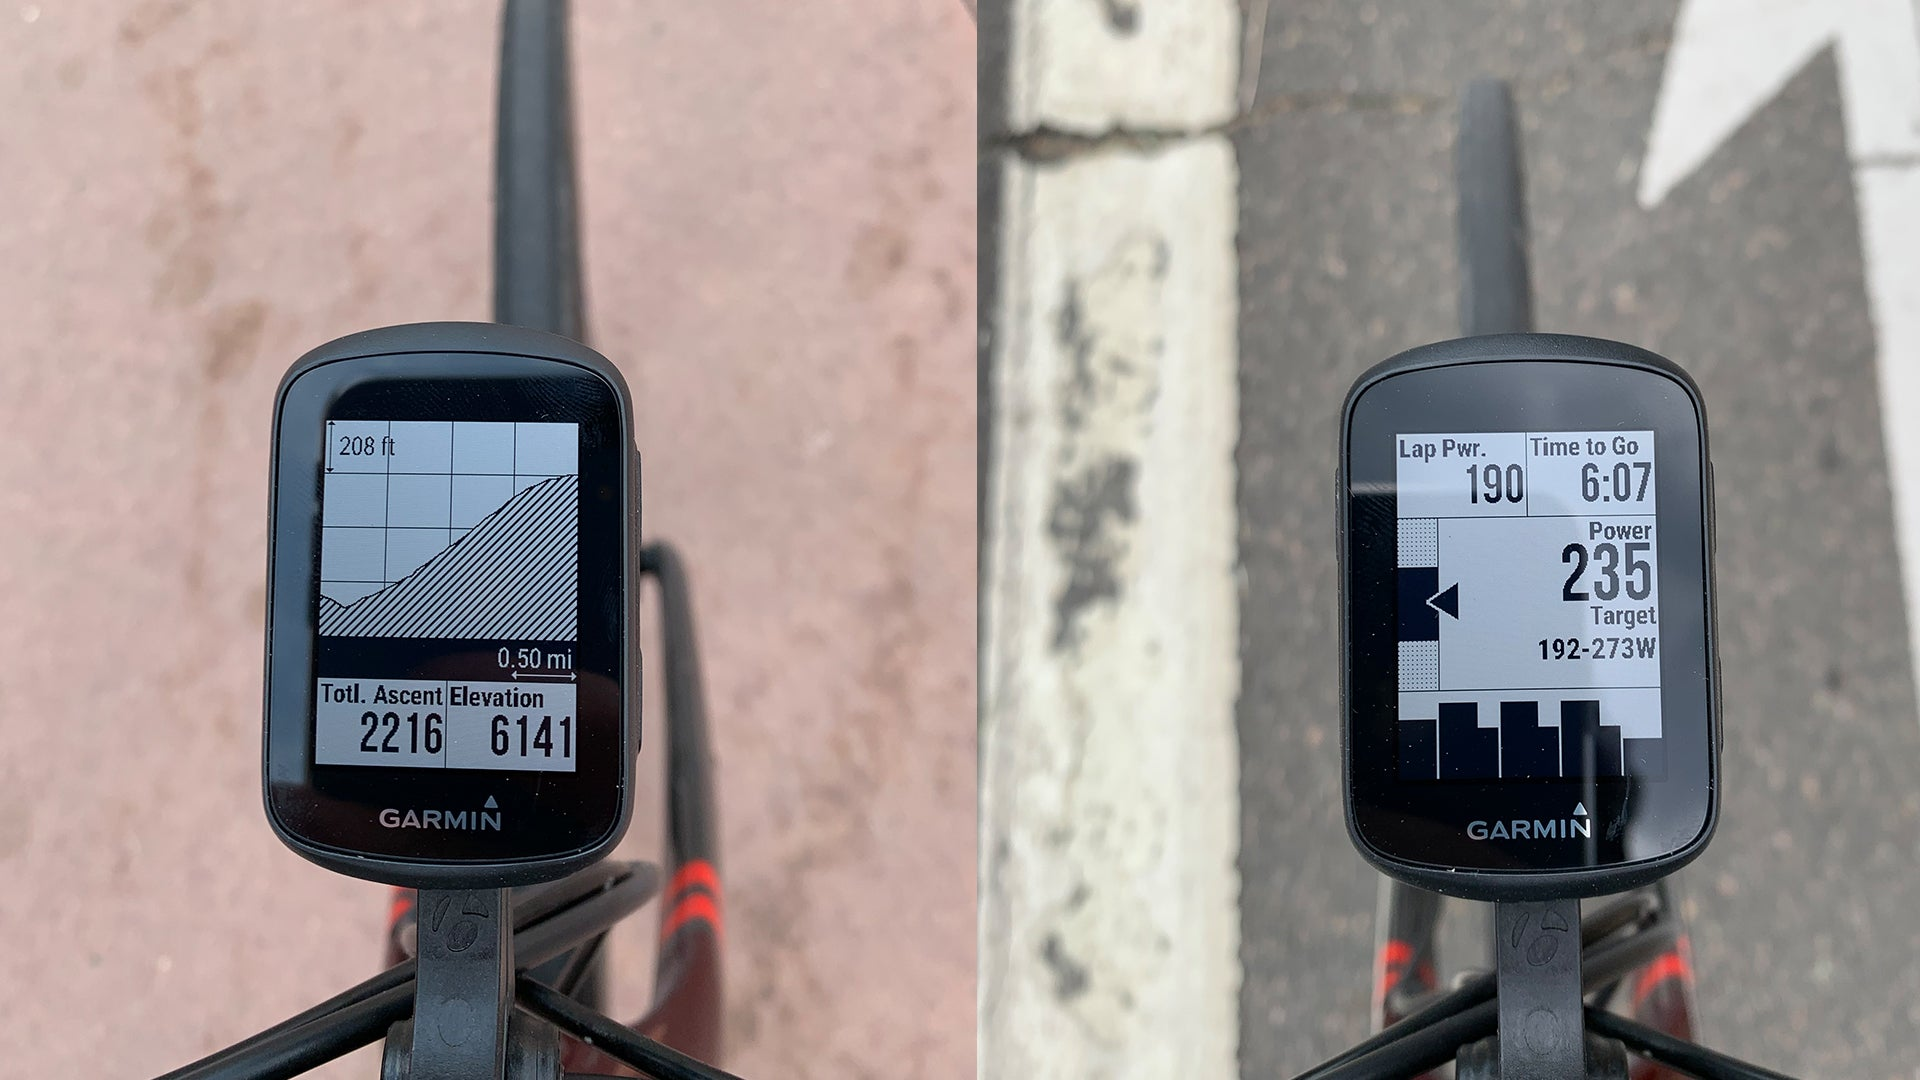 Garmin Edge 130 Plus showing elevation graph in left image, power stats on the other